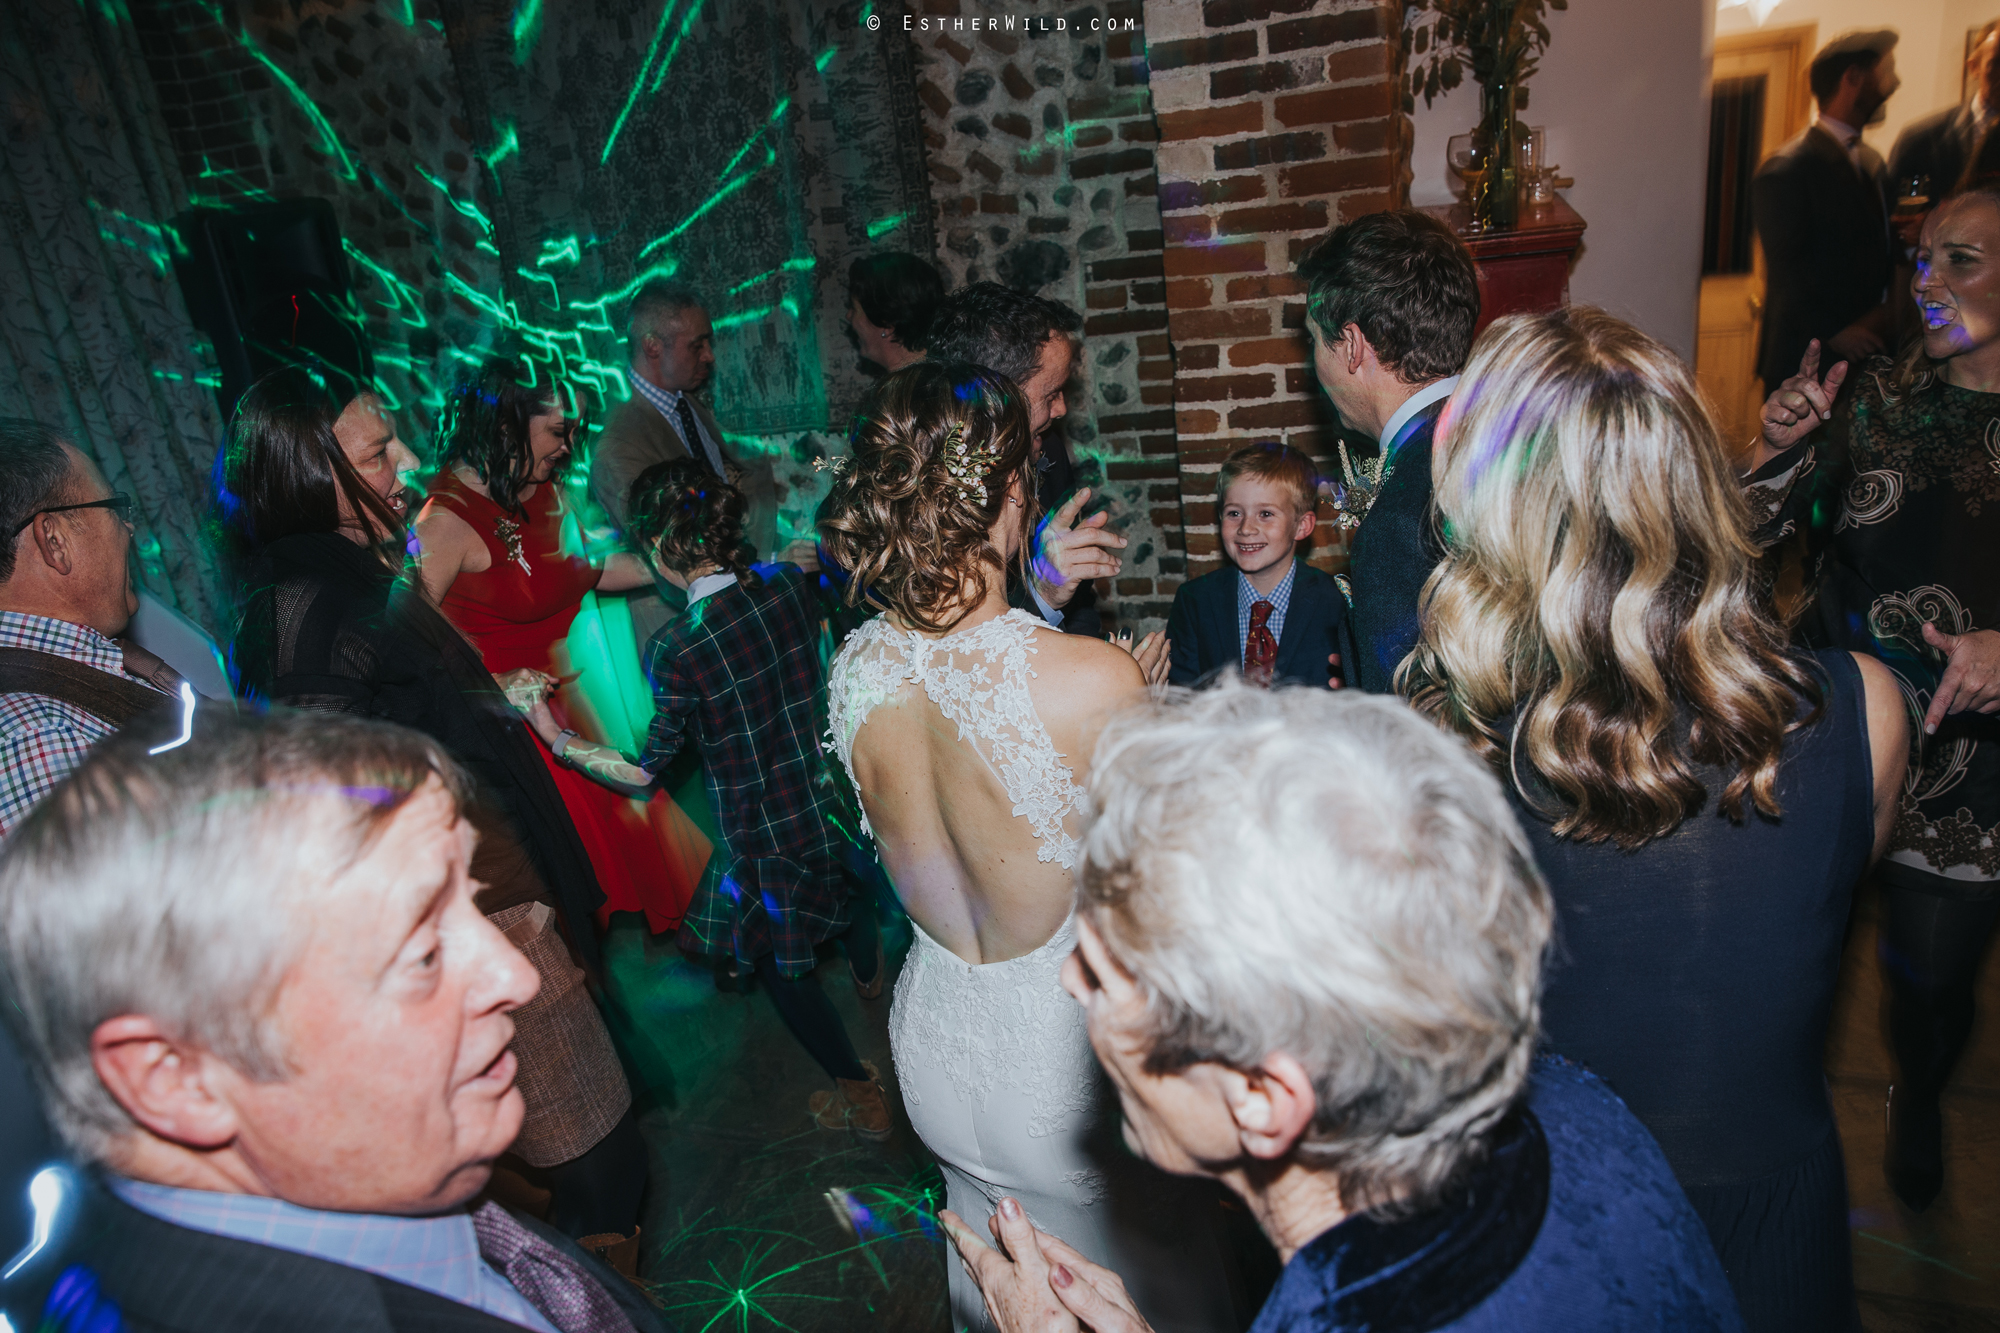 Wedding_Photographer_Chaucer_Barn_Holt_Norfolk_Country_Rustic_Venue_Copyright_Esther_Wild_IMG_2444.jpg